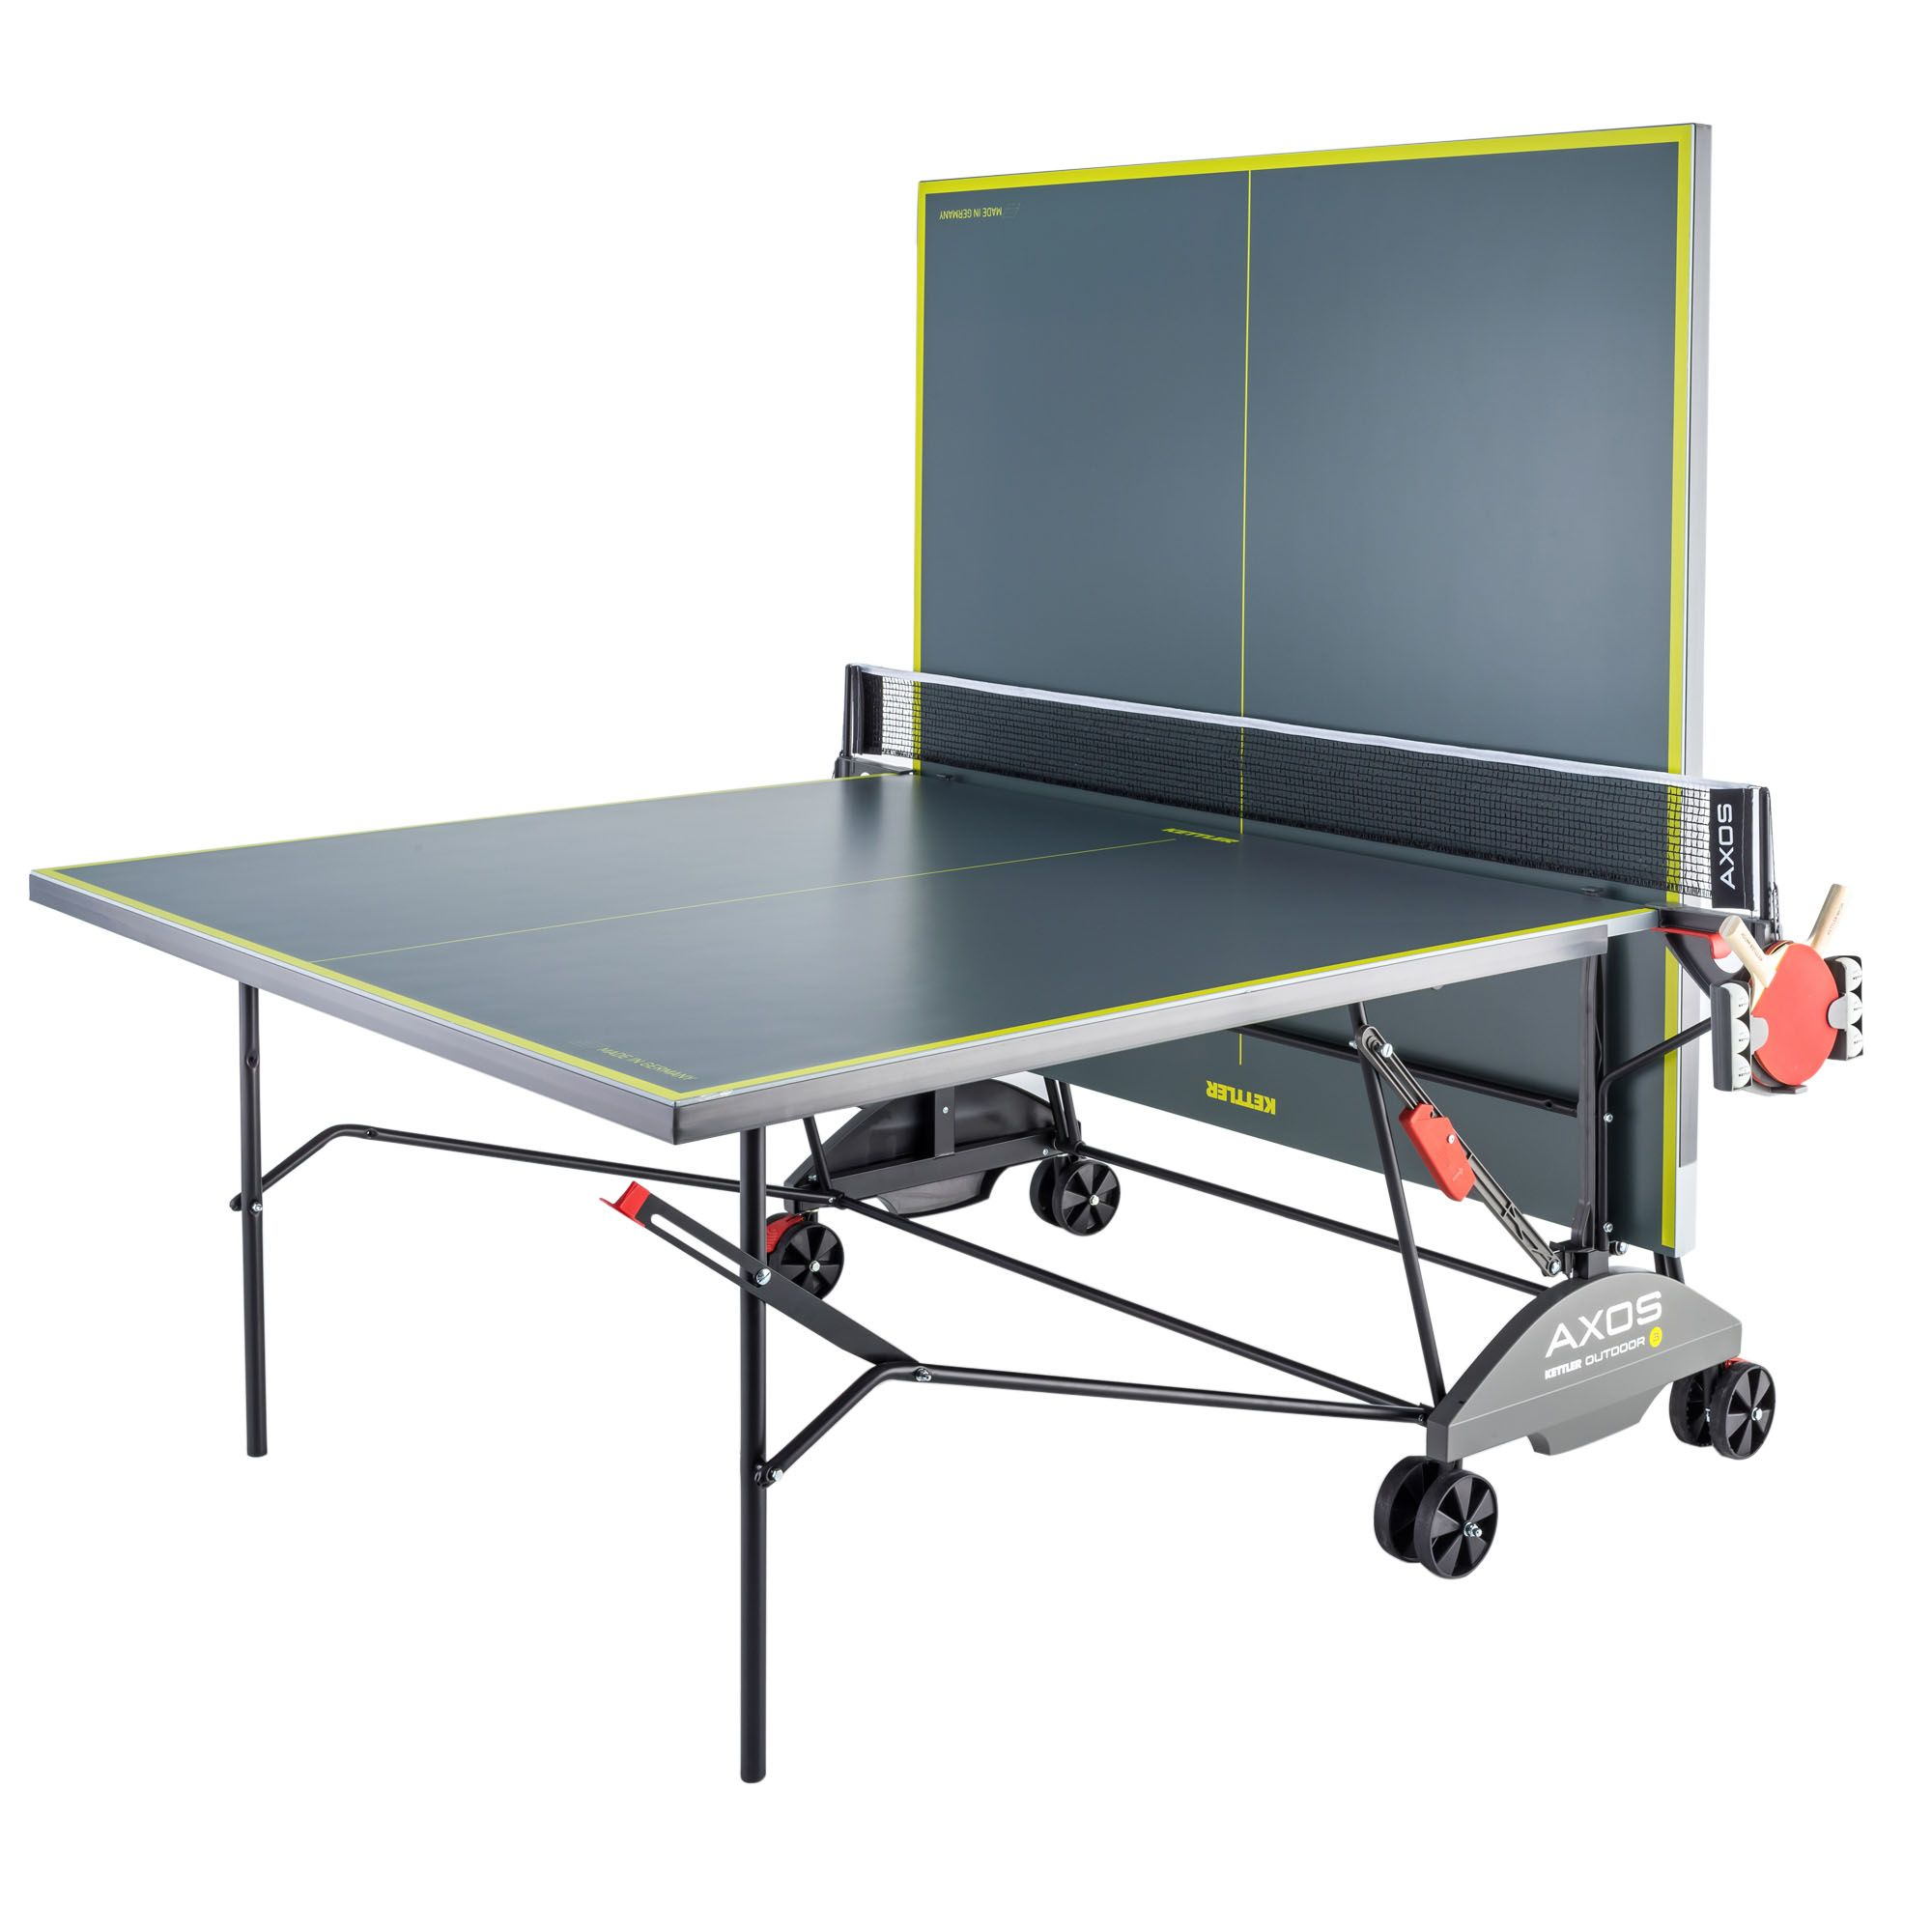 kettler axos 3 outdoor table tennis table. Black Bedroom Furniture Sets. Home Design Ideas